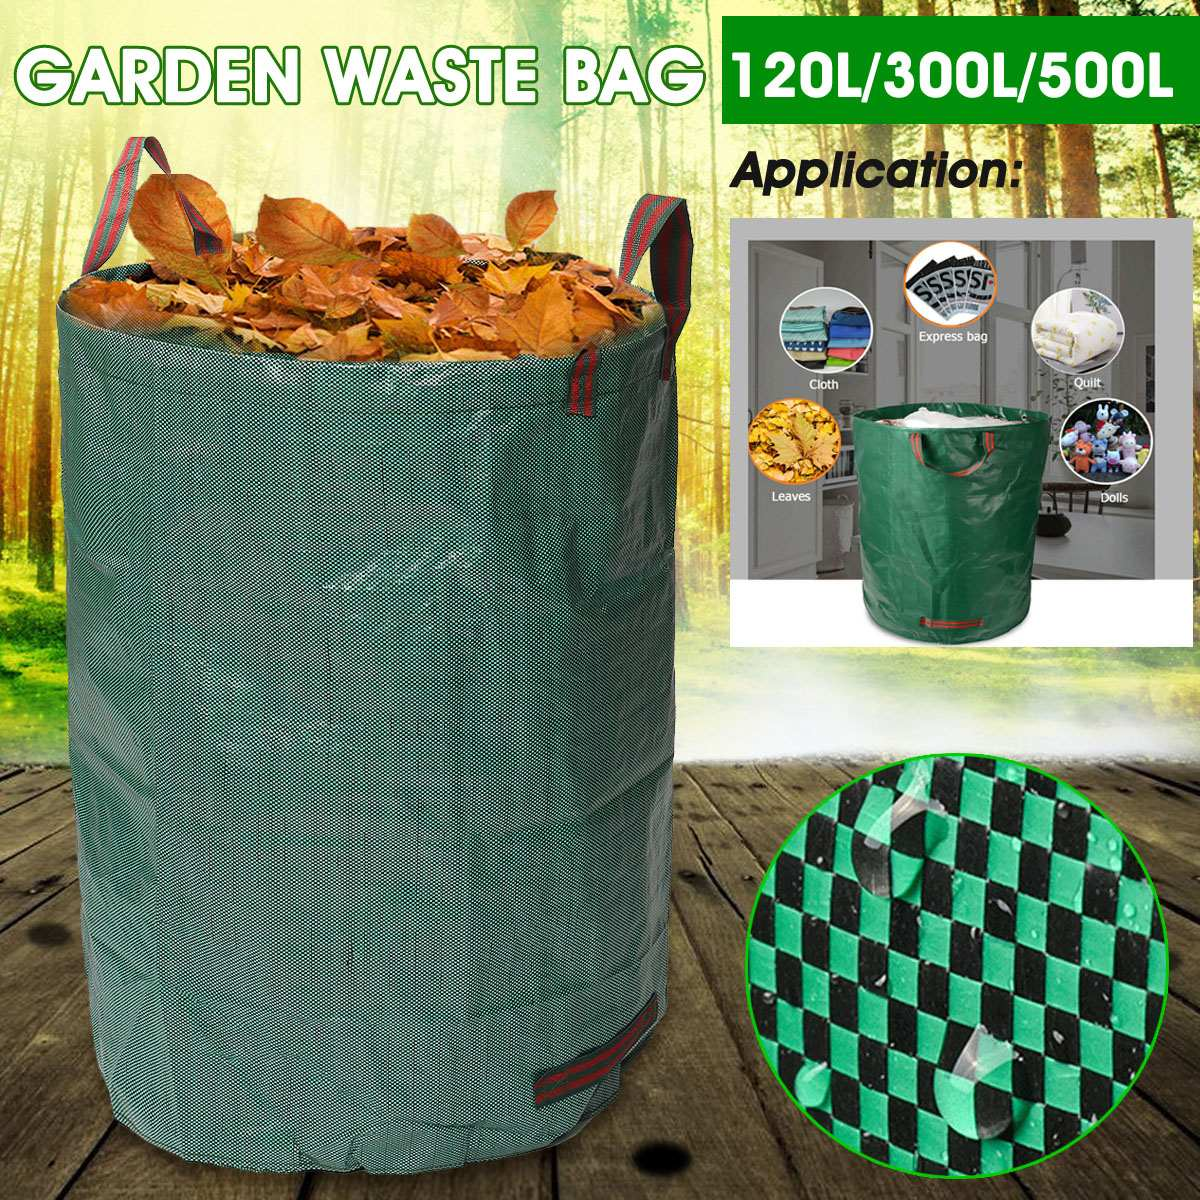 120L/300L/500L Garden Waste Bags Refuse Rubbish Grass Large Holder Bag Case Sack Heavy Duty Bin Home Toys Clothing Storage Yard